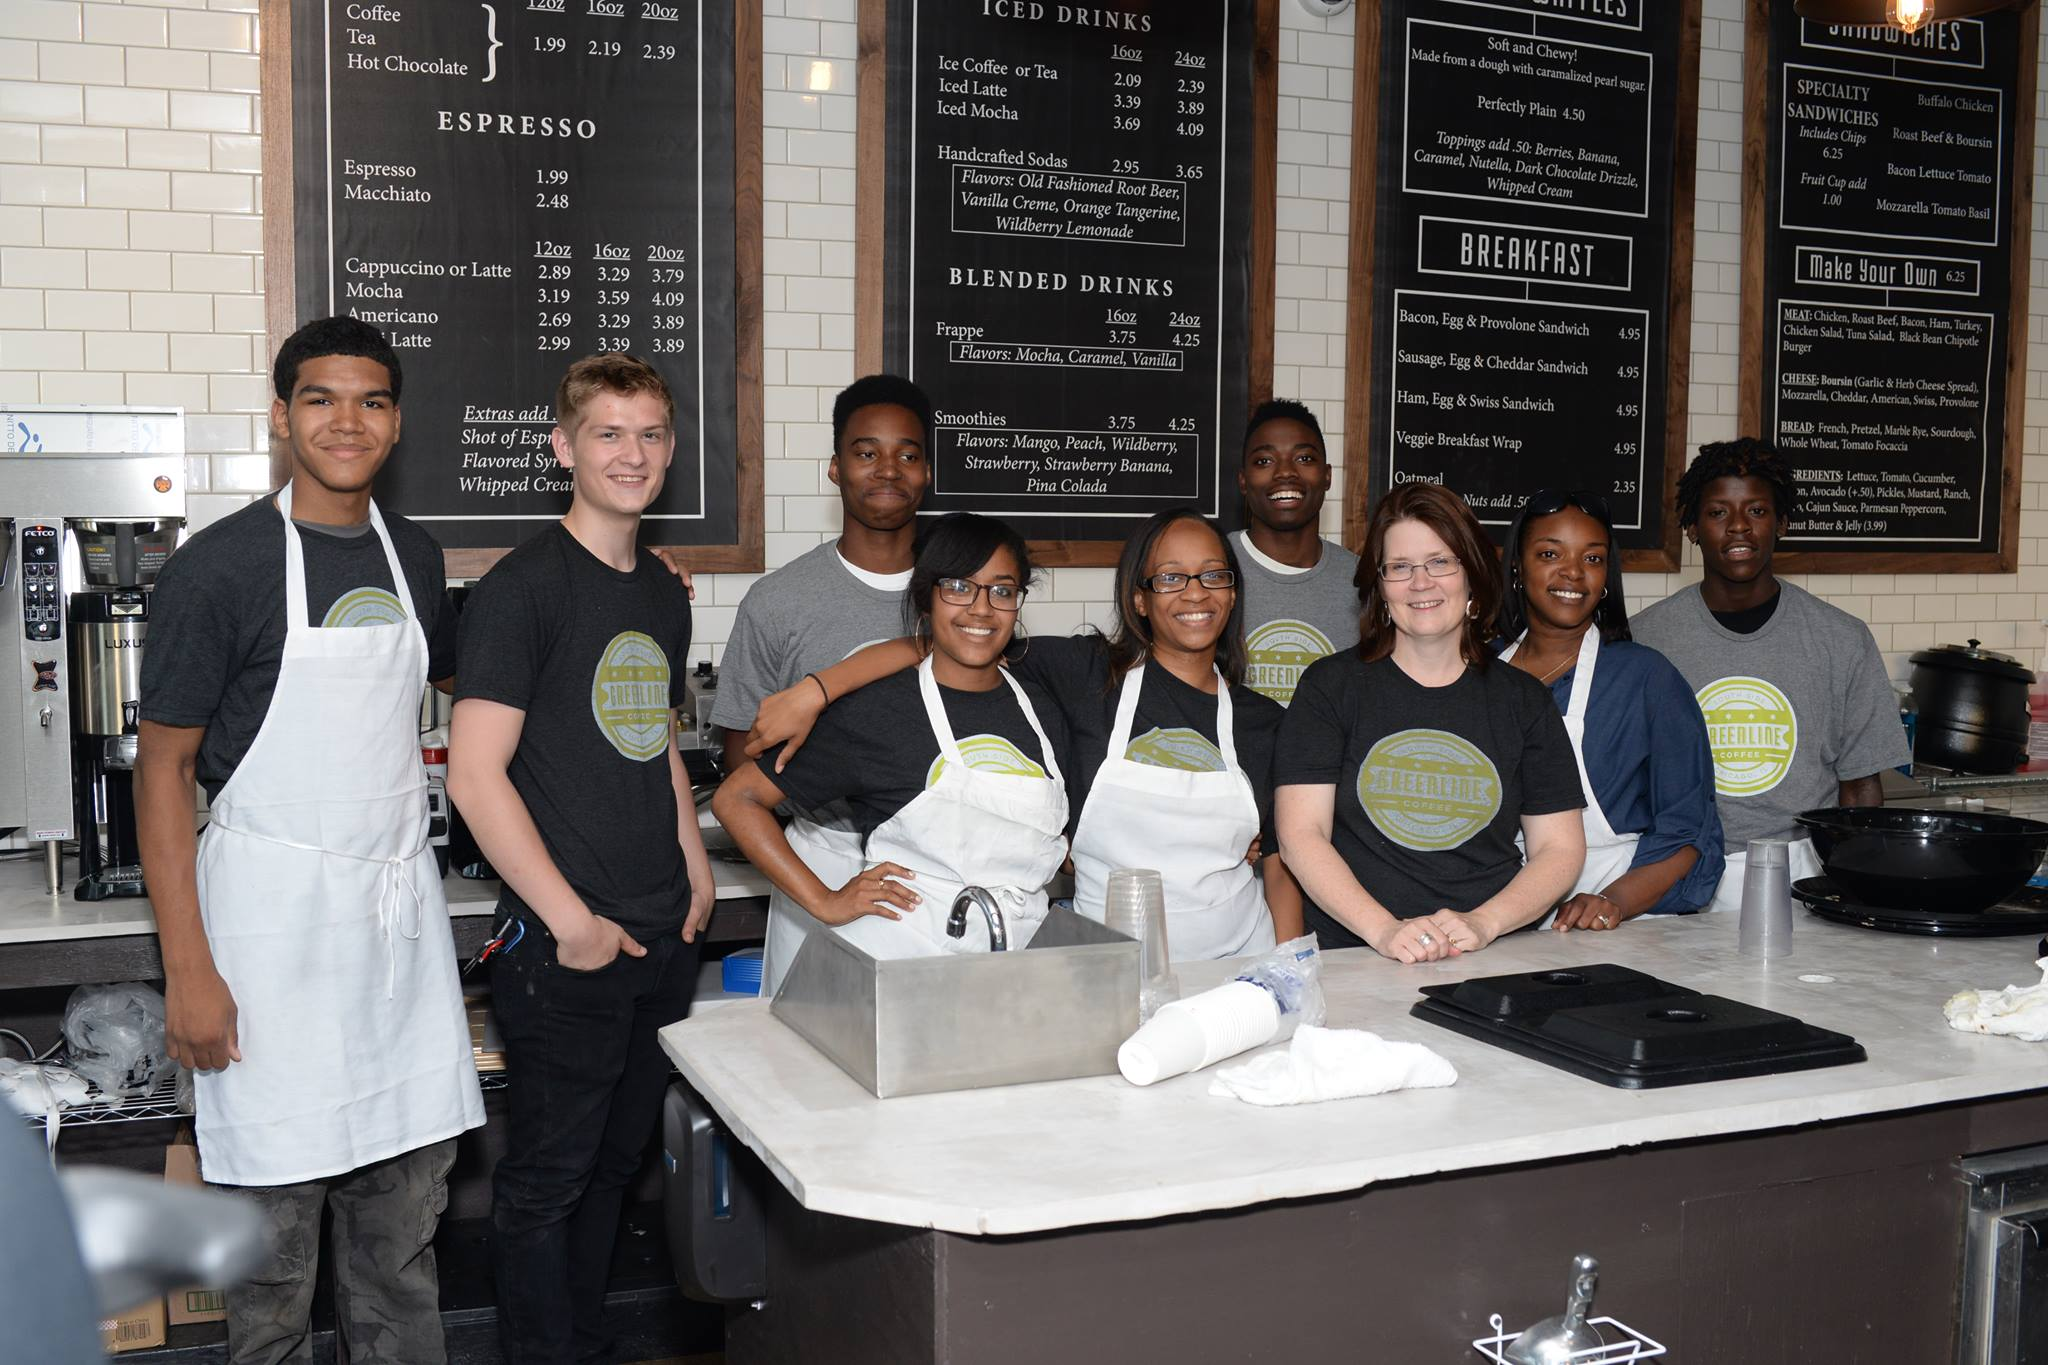 Employees of Greenline Coffee, a social enterprise launched by Sunshine.